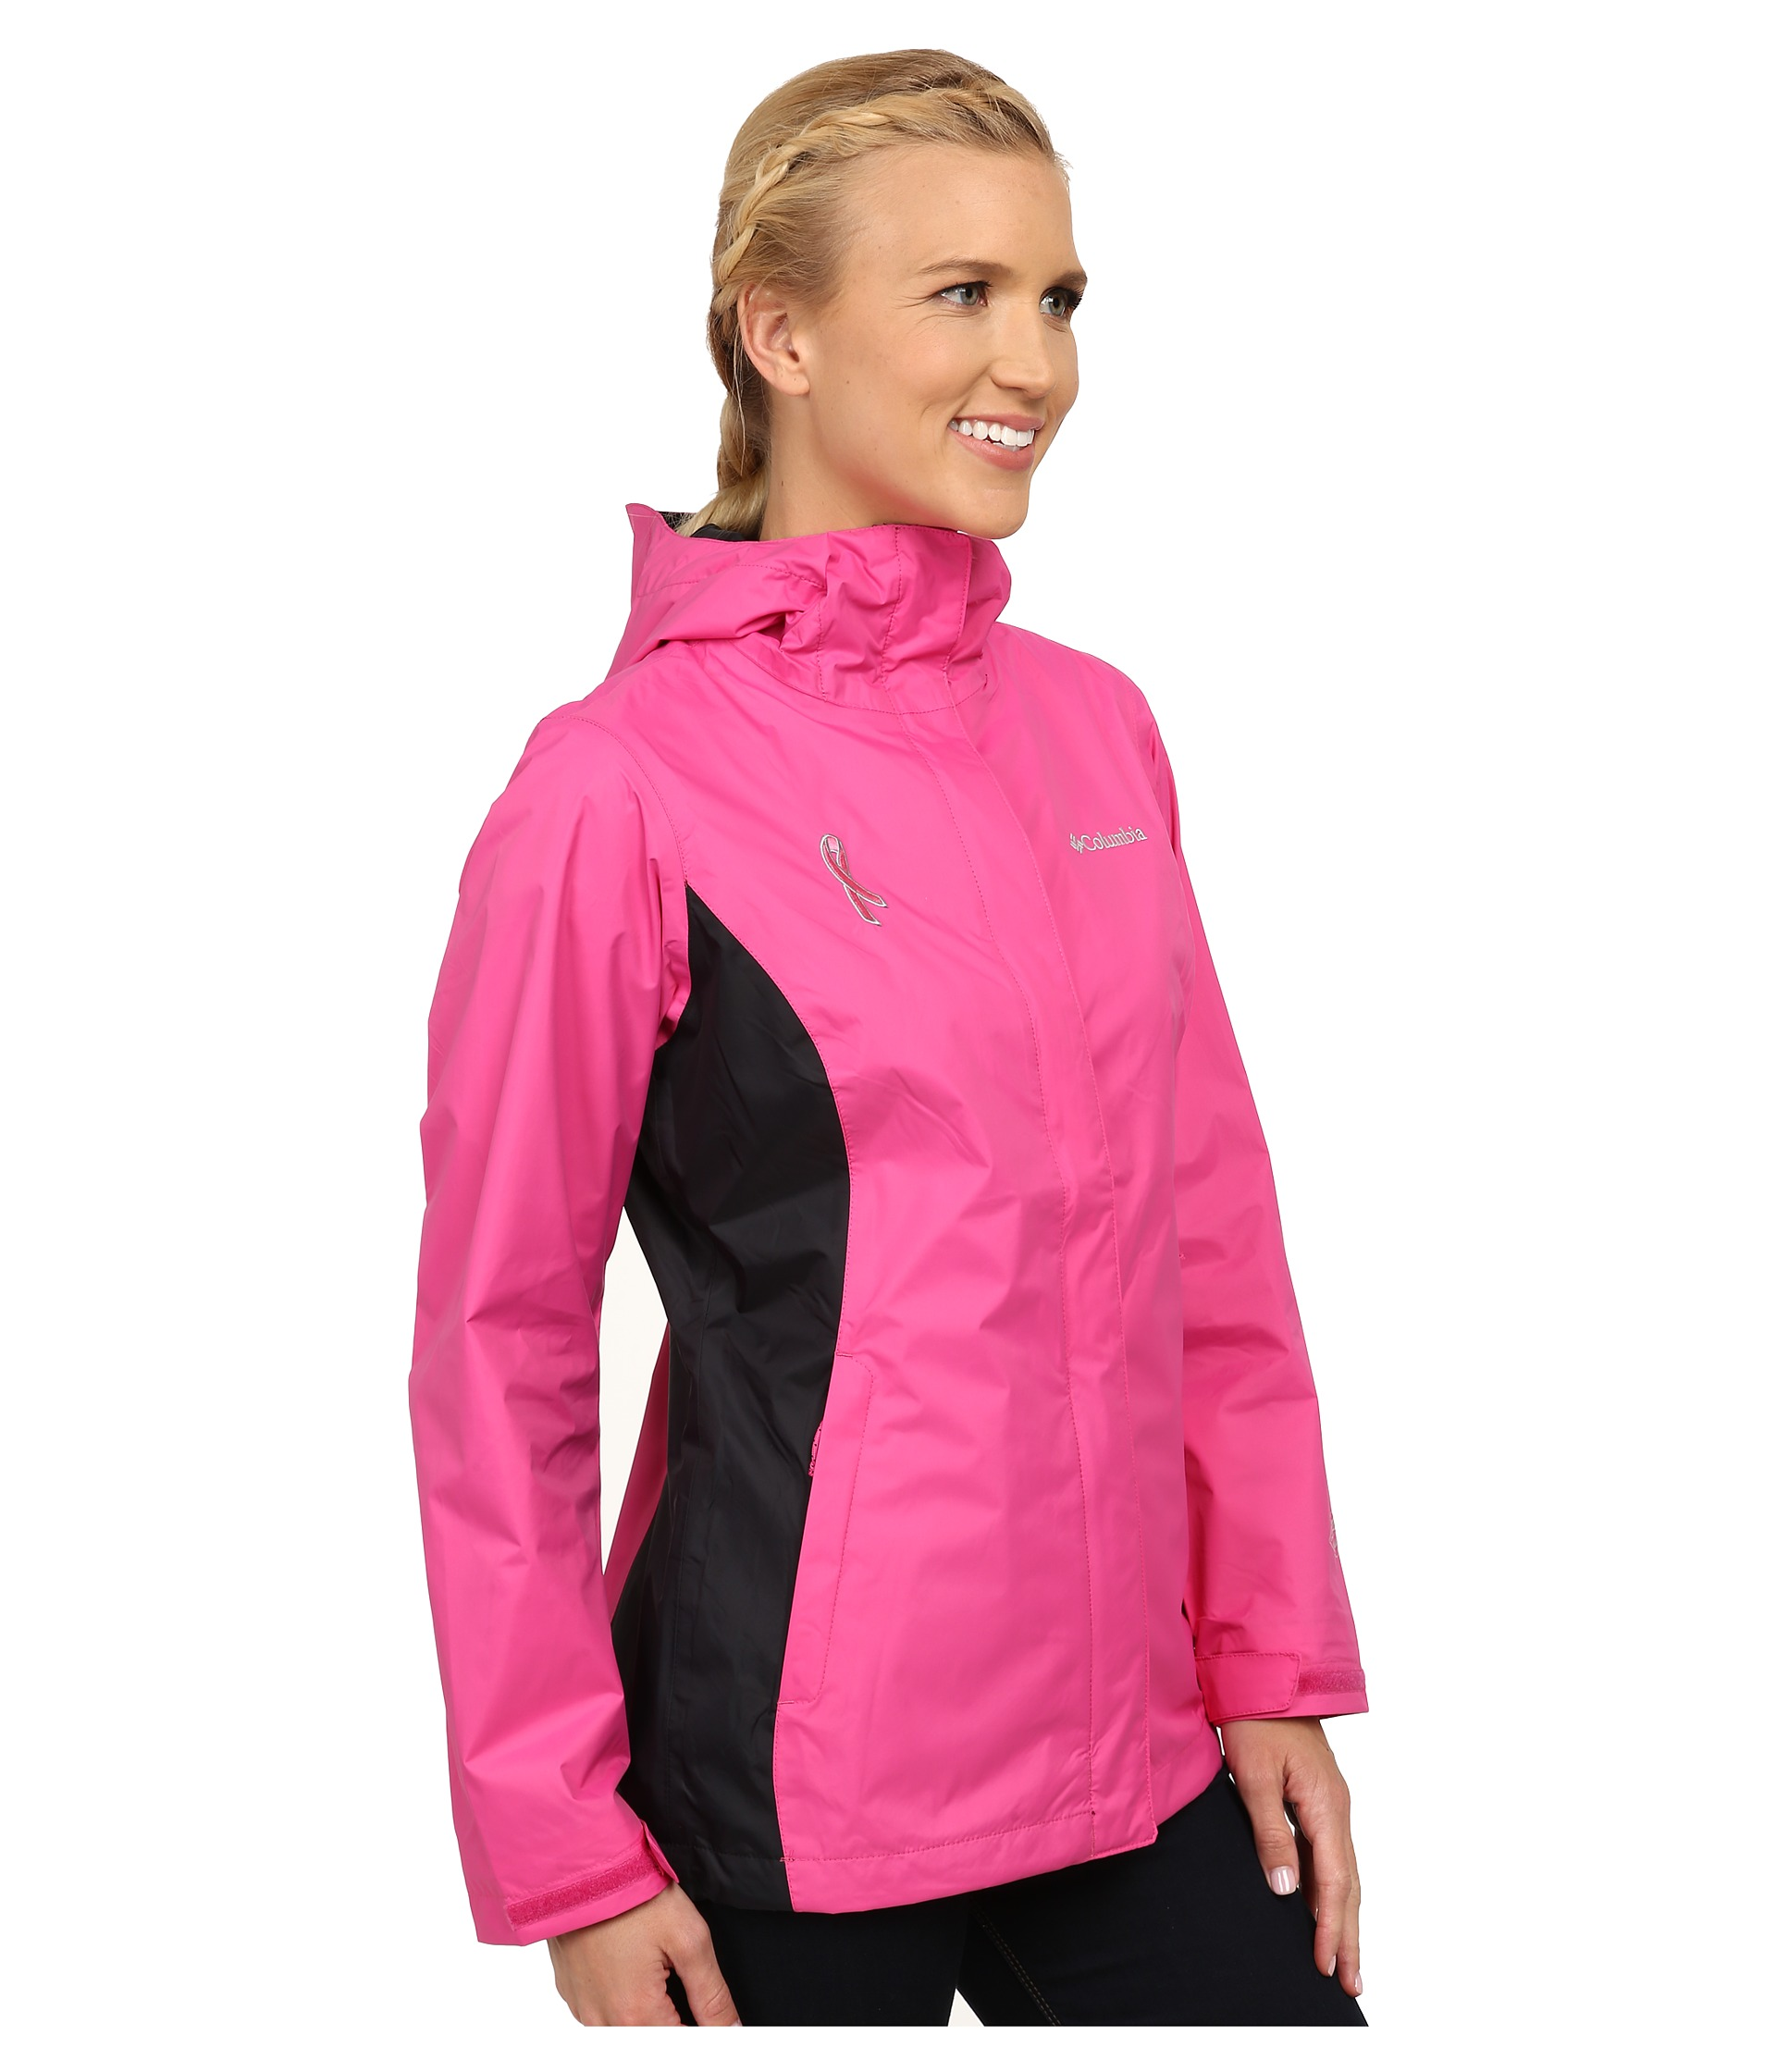 Free shipping BOTH ways on Rain Jackets and Trench Coats, Pink, from our vast selection of styles. Fast delivery, and 24/7/ real-person service with a smile. Click or call